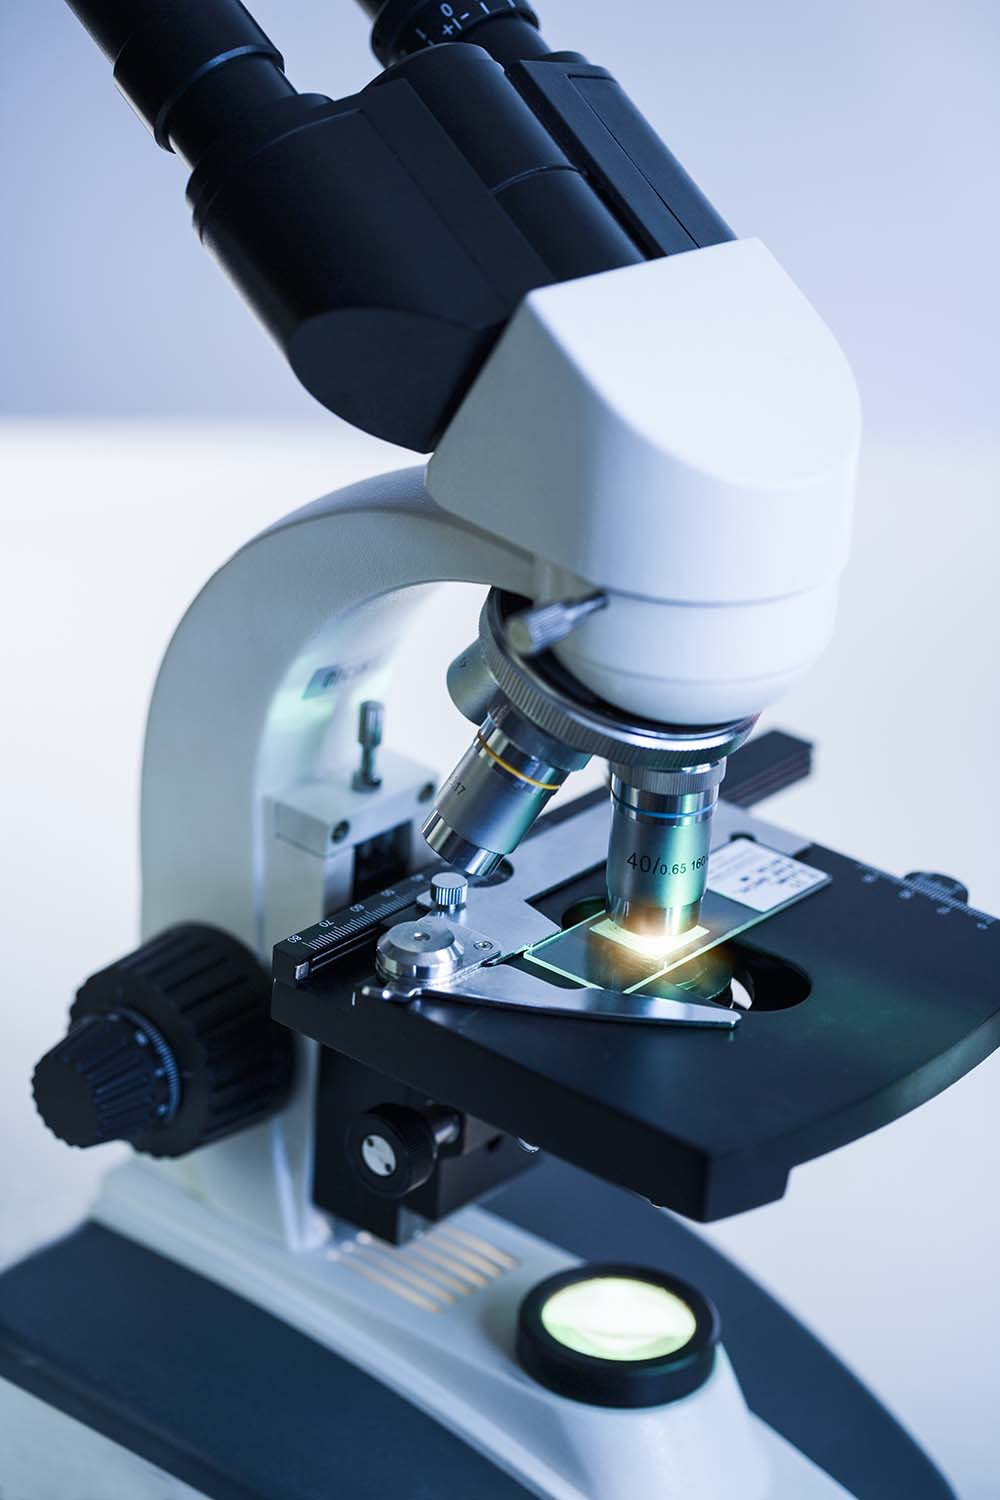 Free stock photo A research microscope with examination slide